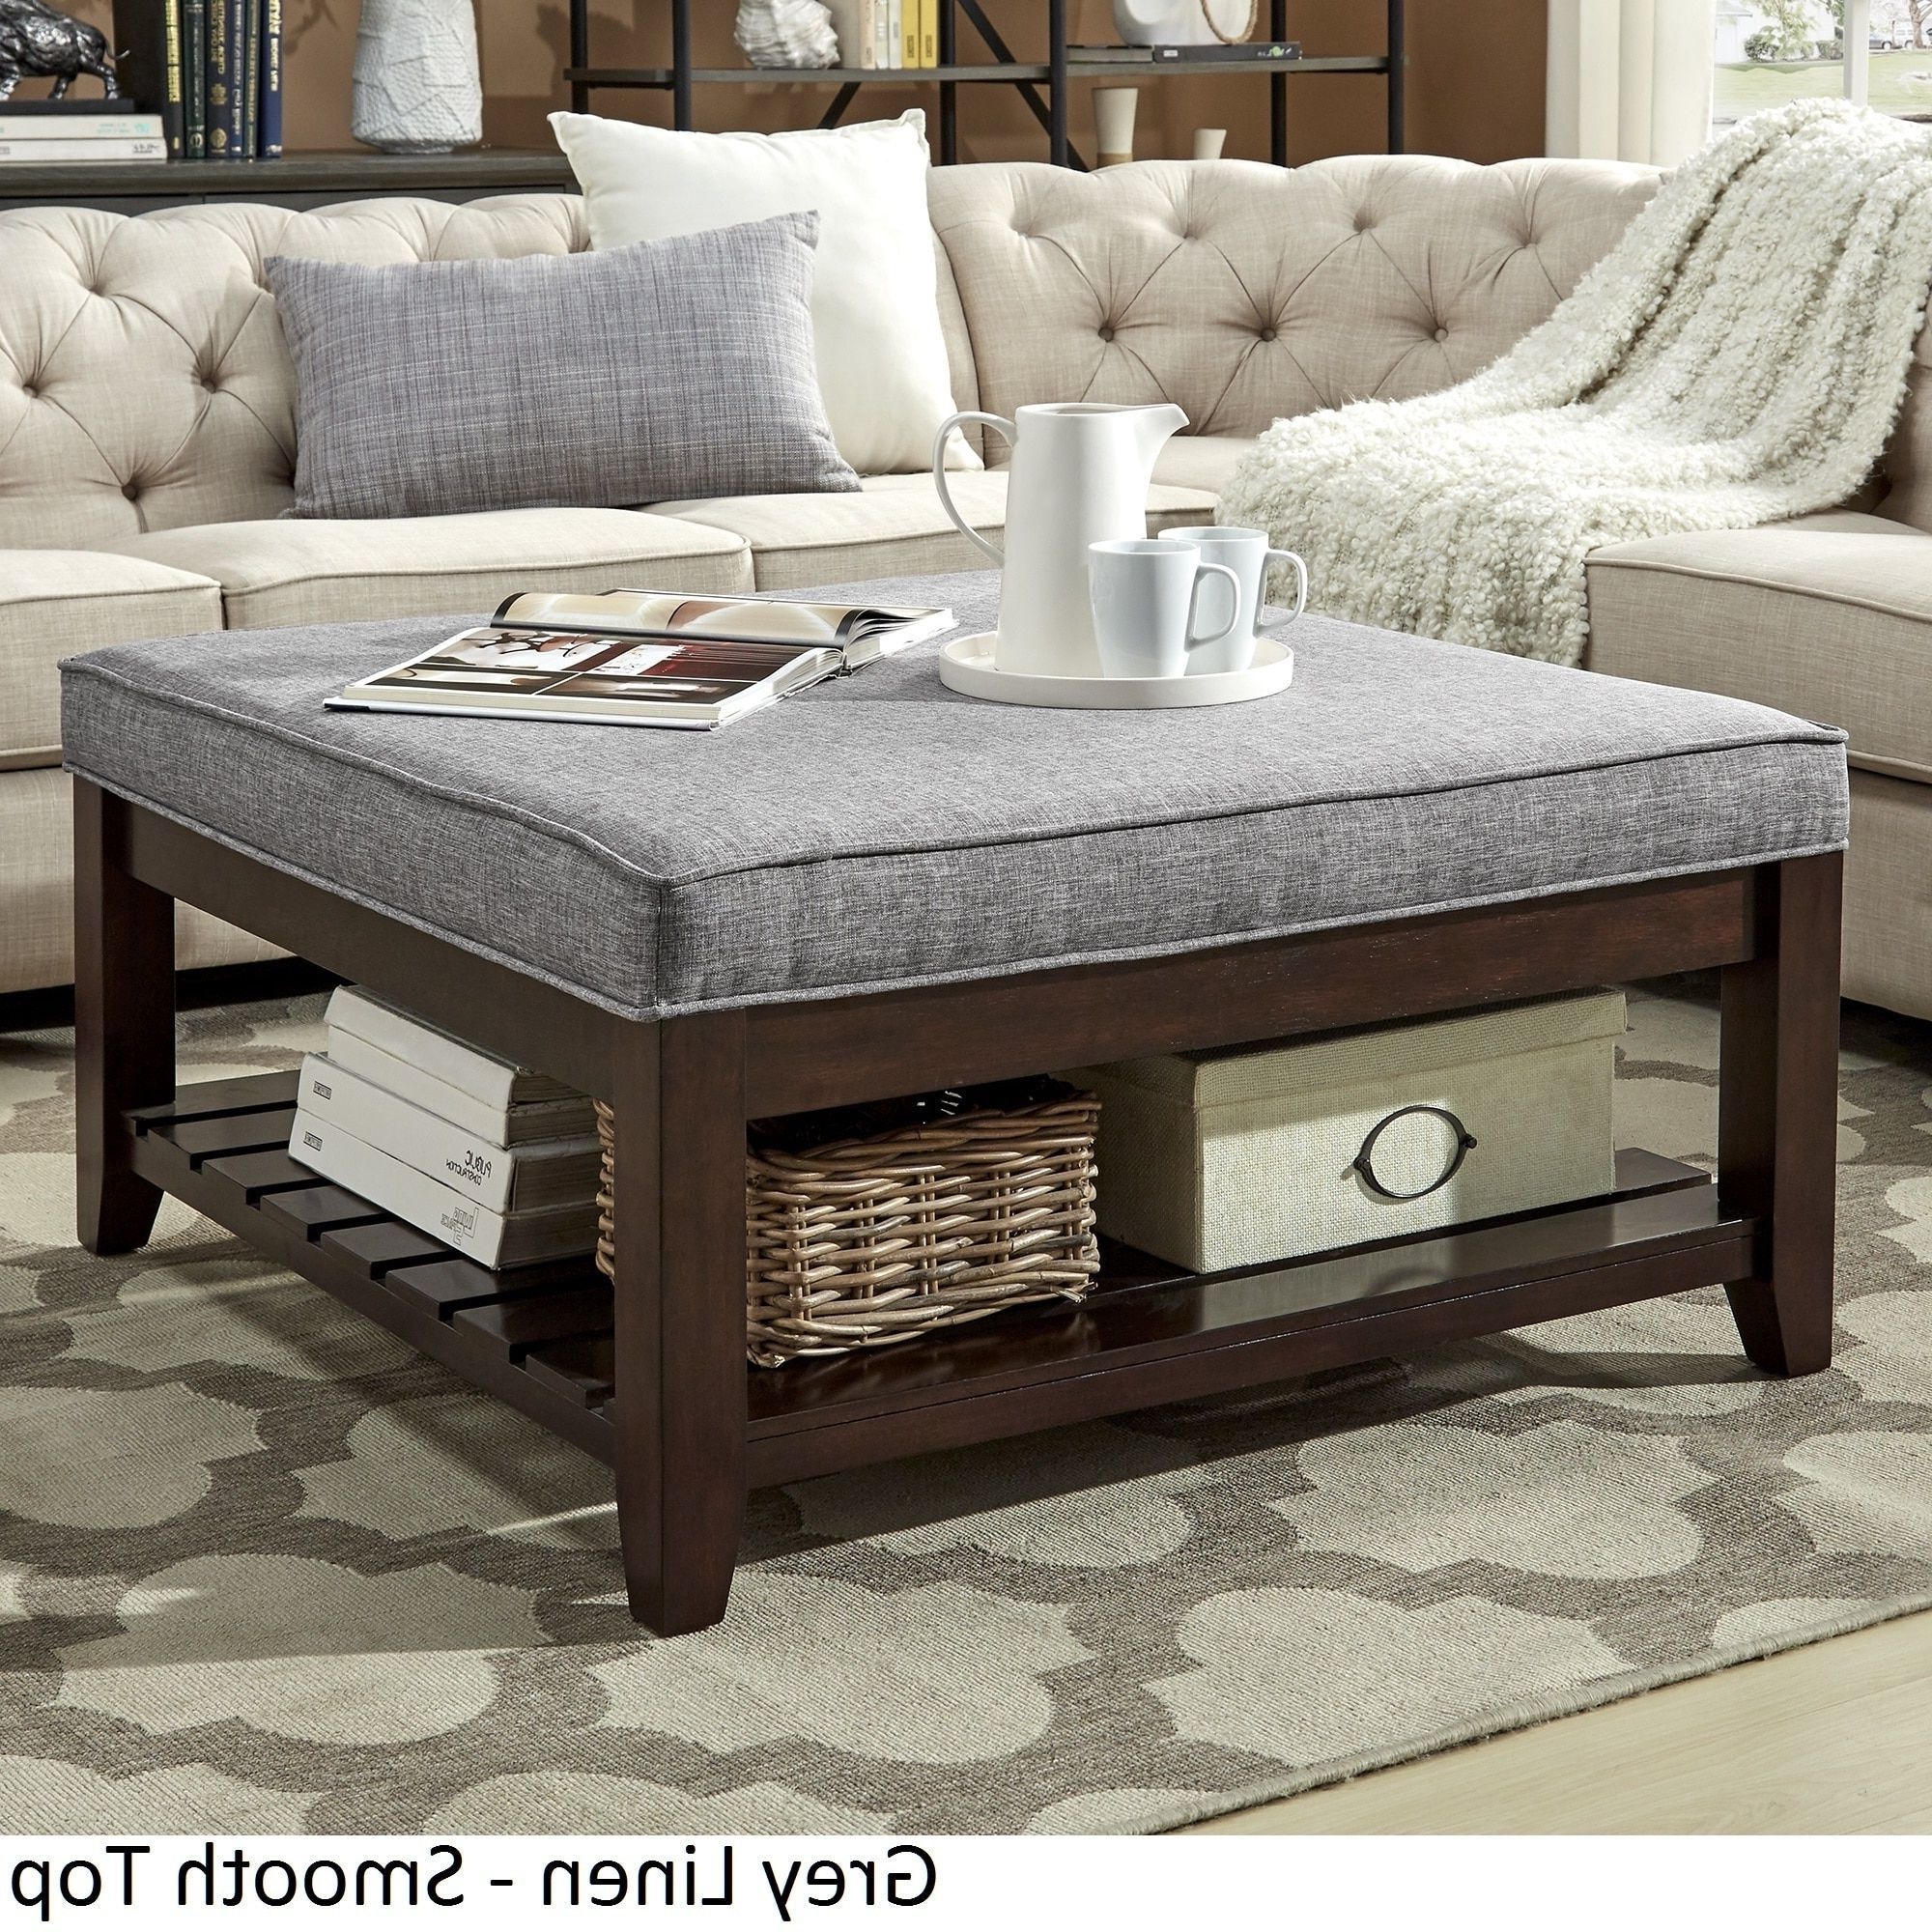 Lennon Espresso Planked Storage Ottoman Coffee Table For 2020 Lennon Pine Planked Storage Ottoman Coffee Tables (View 6 of 20)